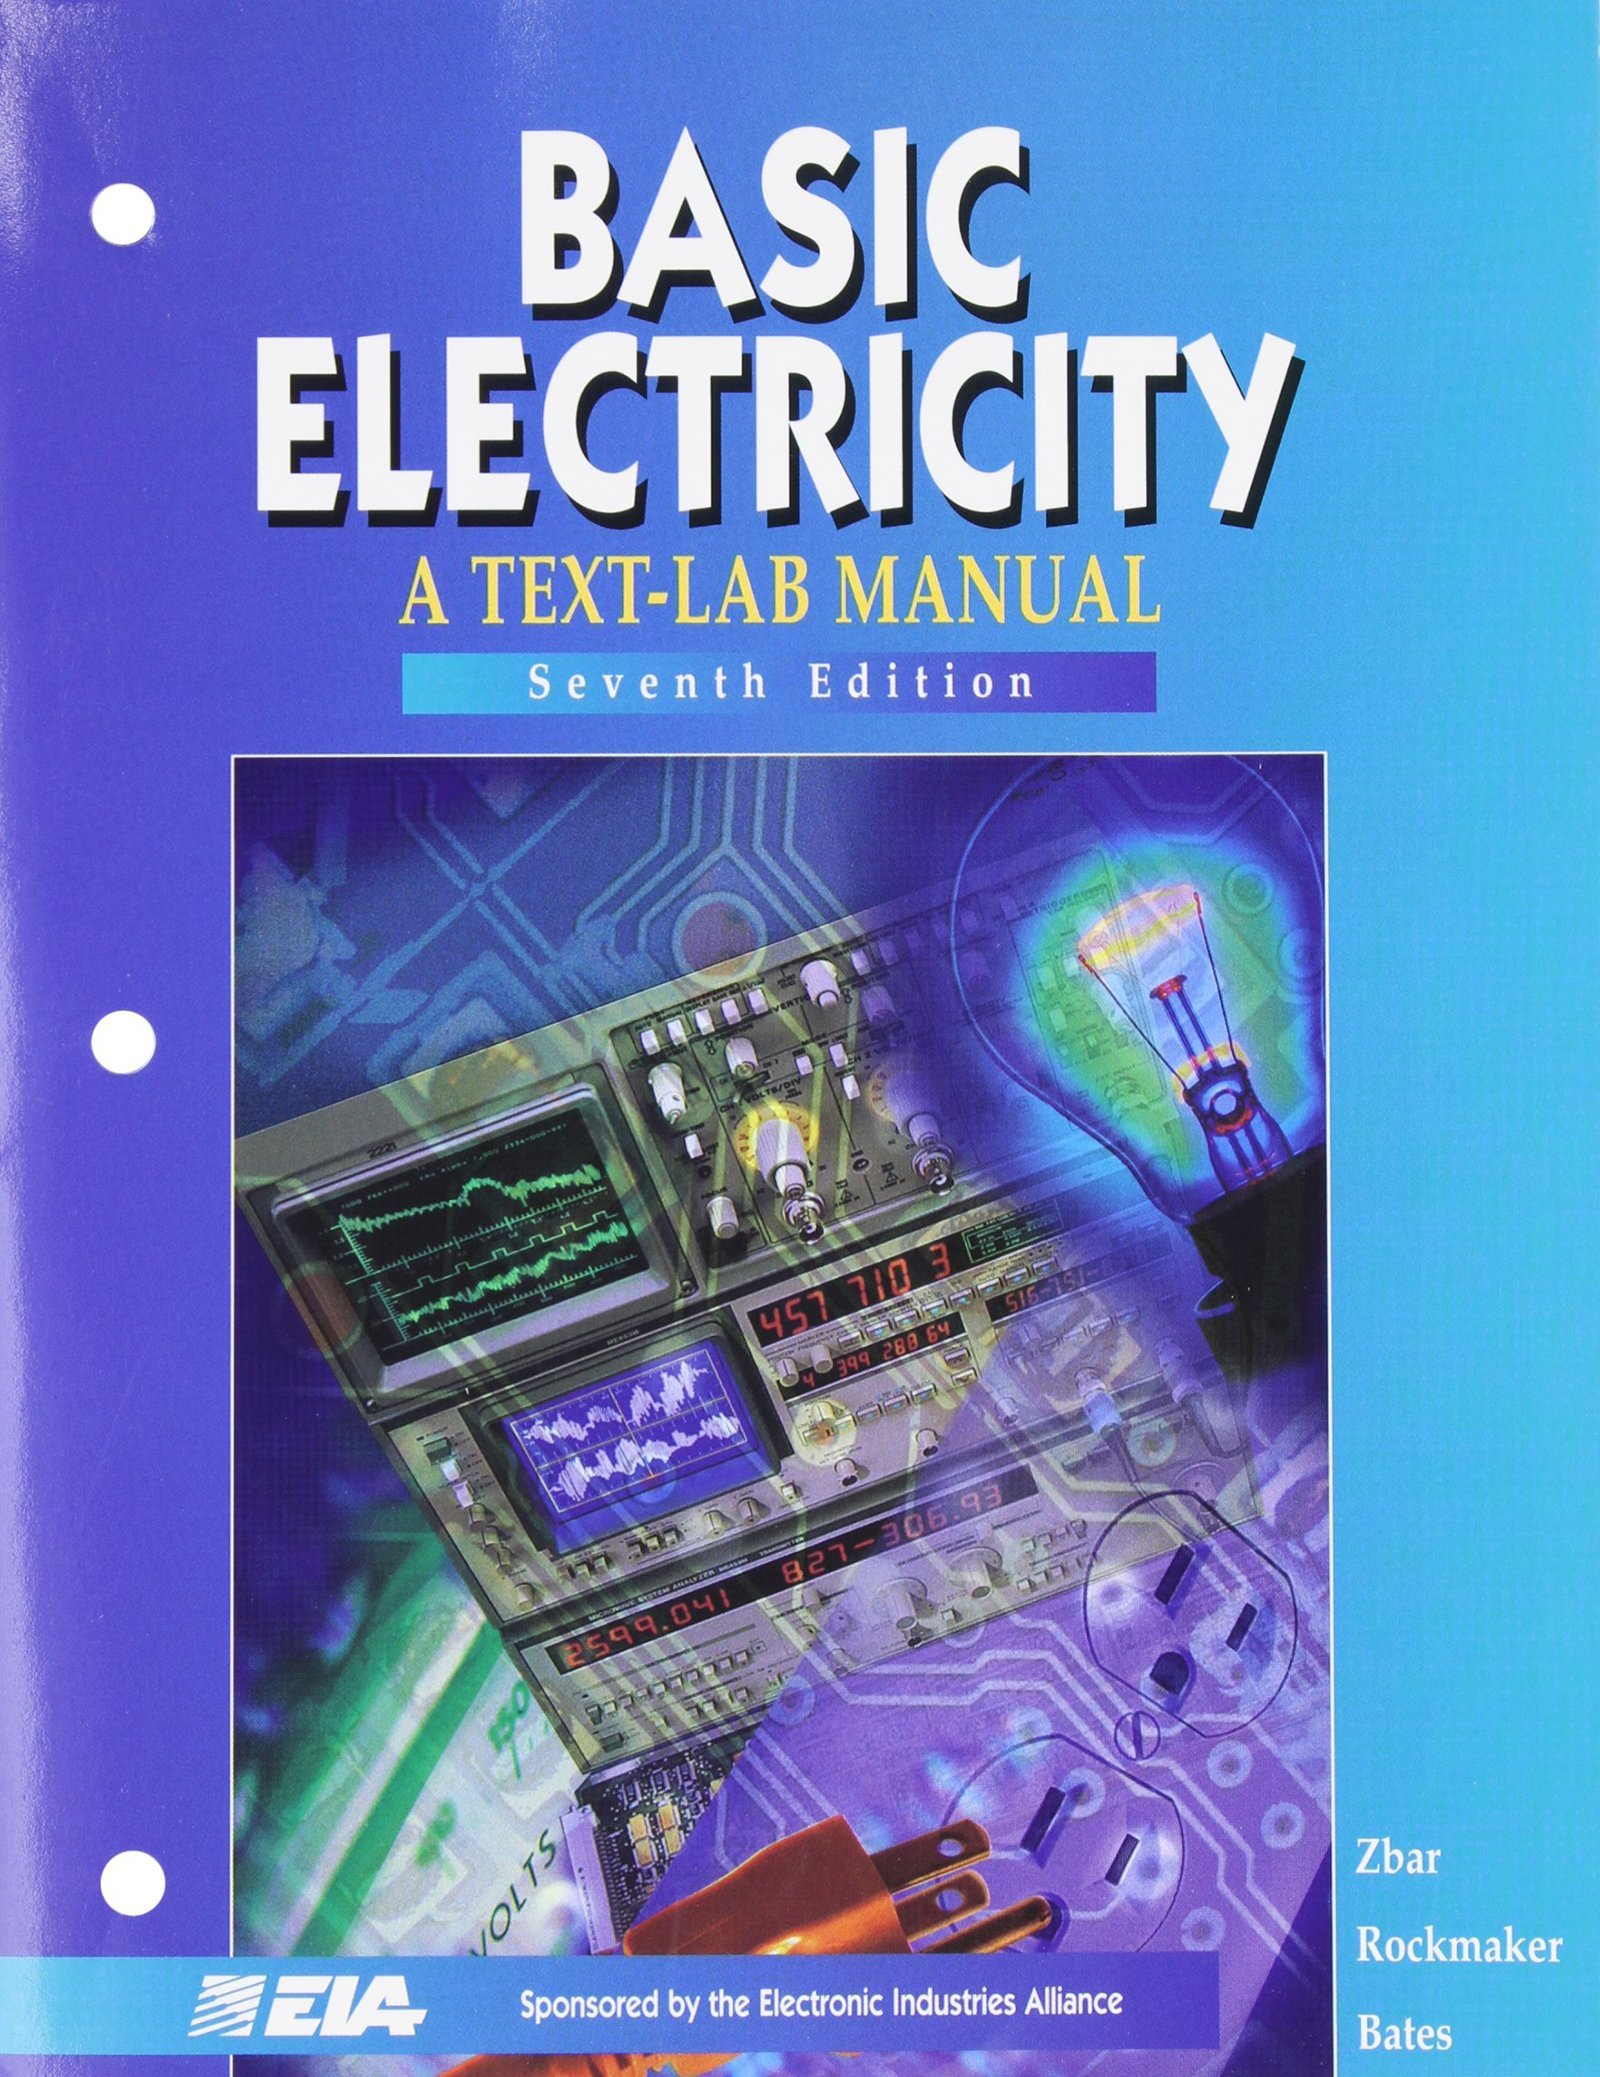 Buy BASIC ELECTRICITY: A Text-Lab Manual Book Online at Low Prices in India  | BASIC ELECTRICITY: A Text-Lab Manual Reviews & Ratings - Amazon.in